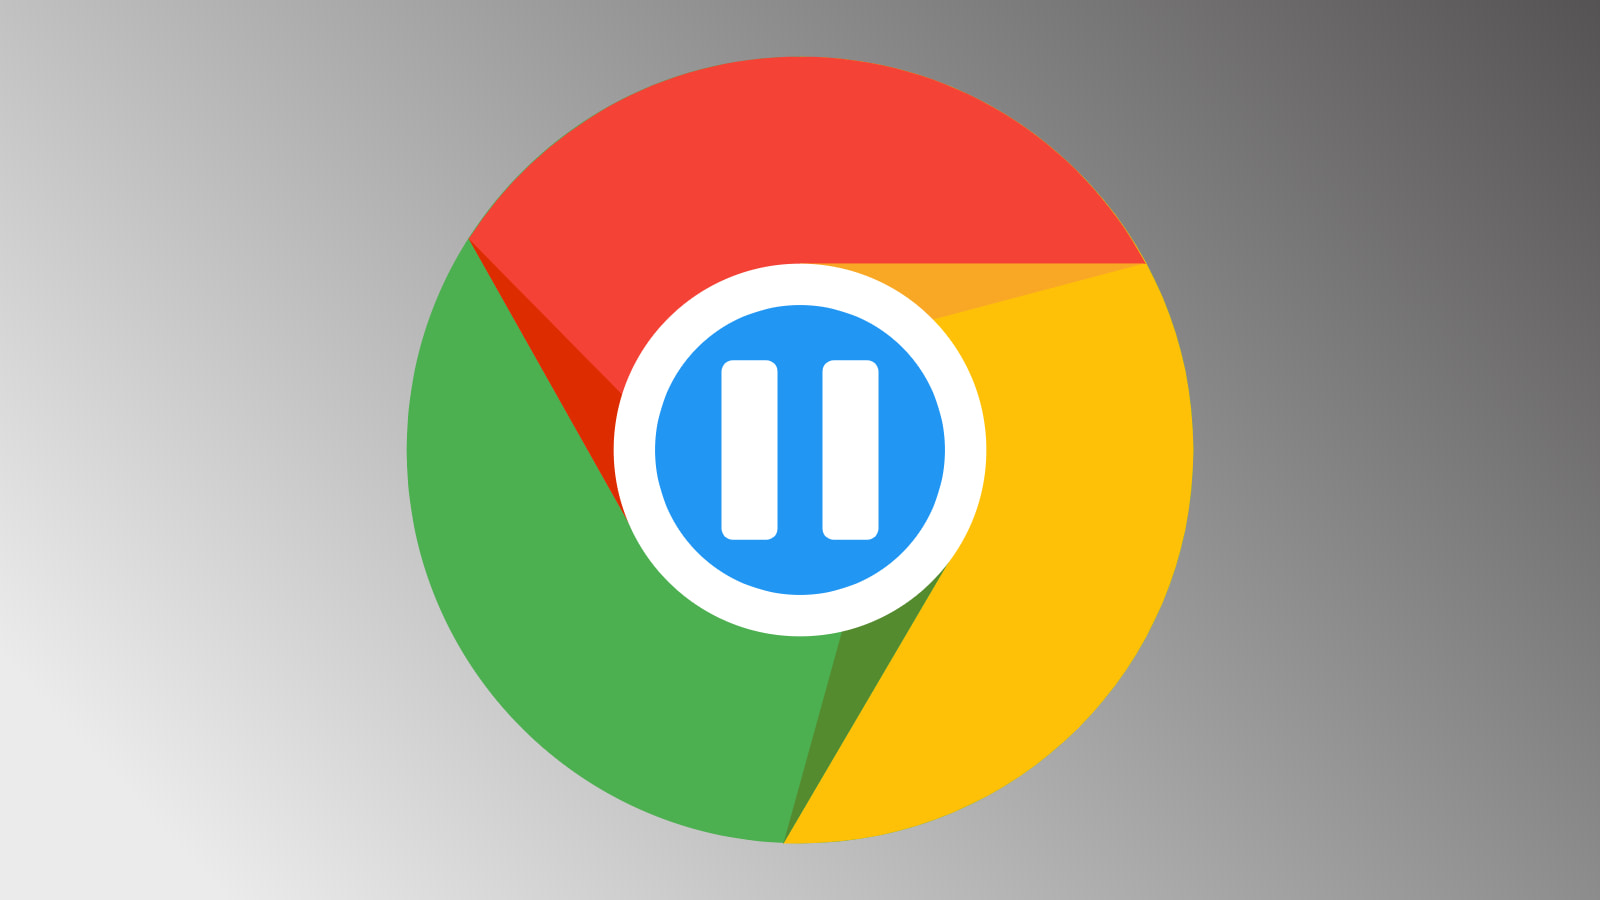 Google halts upcoming Chrome and Chrome OS releases